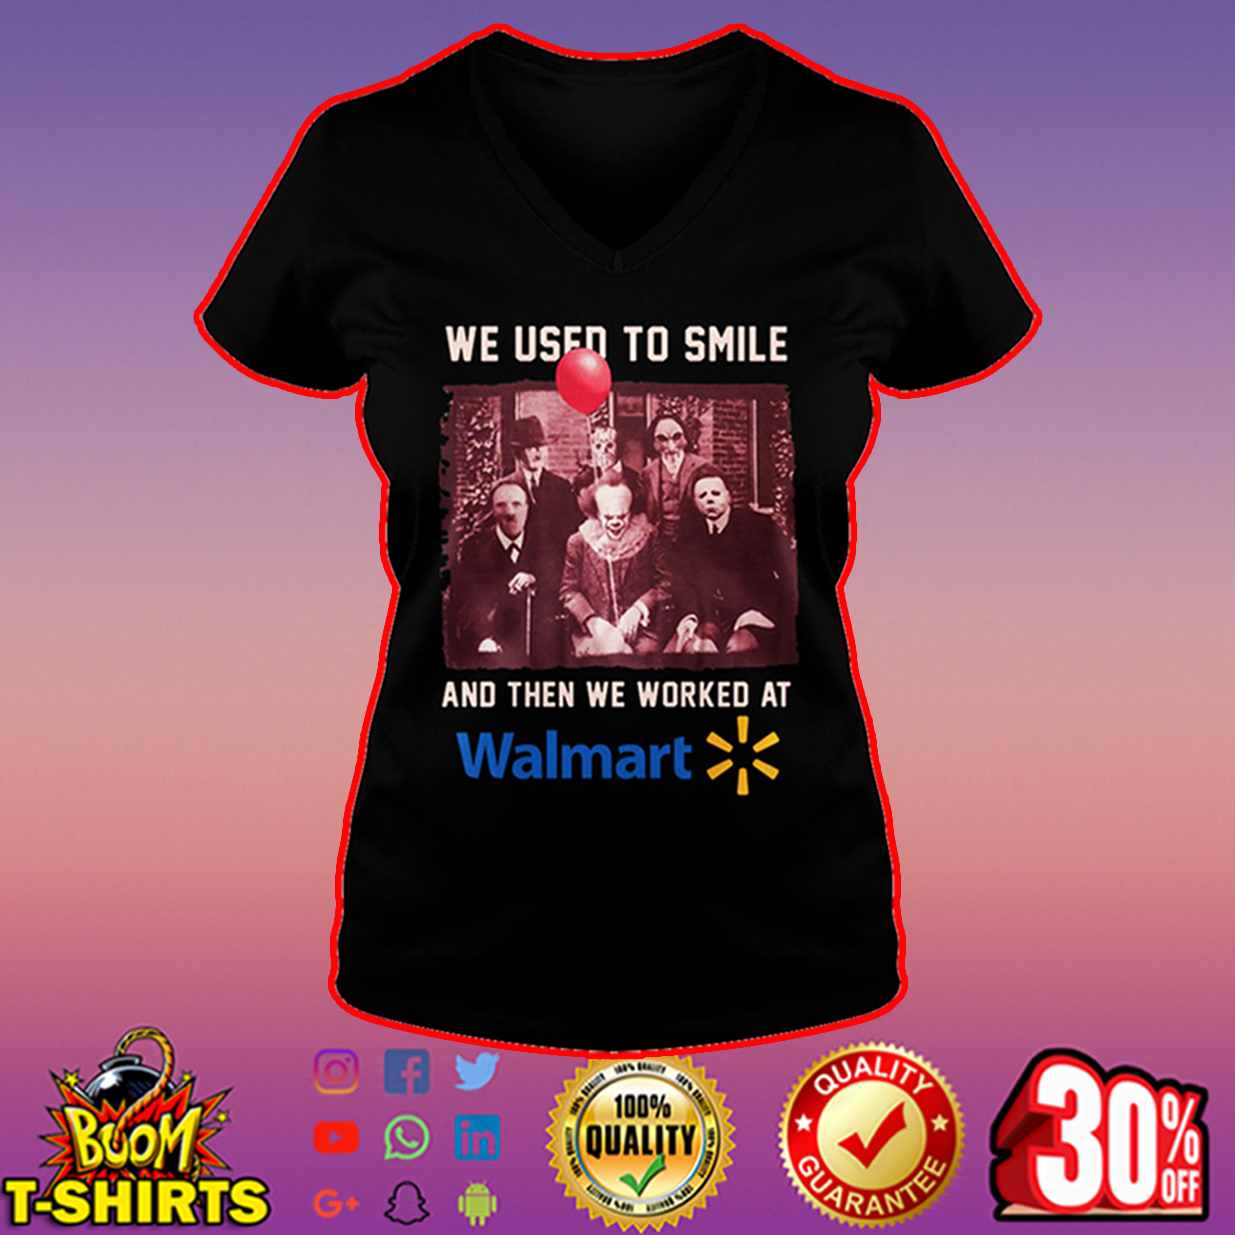 Walmart Pennywise Hannibal Lecter Michael Myers Freddy Krueger Jason Voorhees Billy we used to smile v-neck